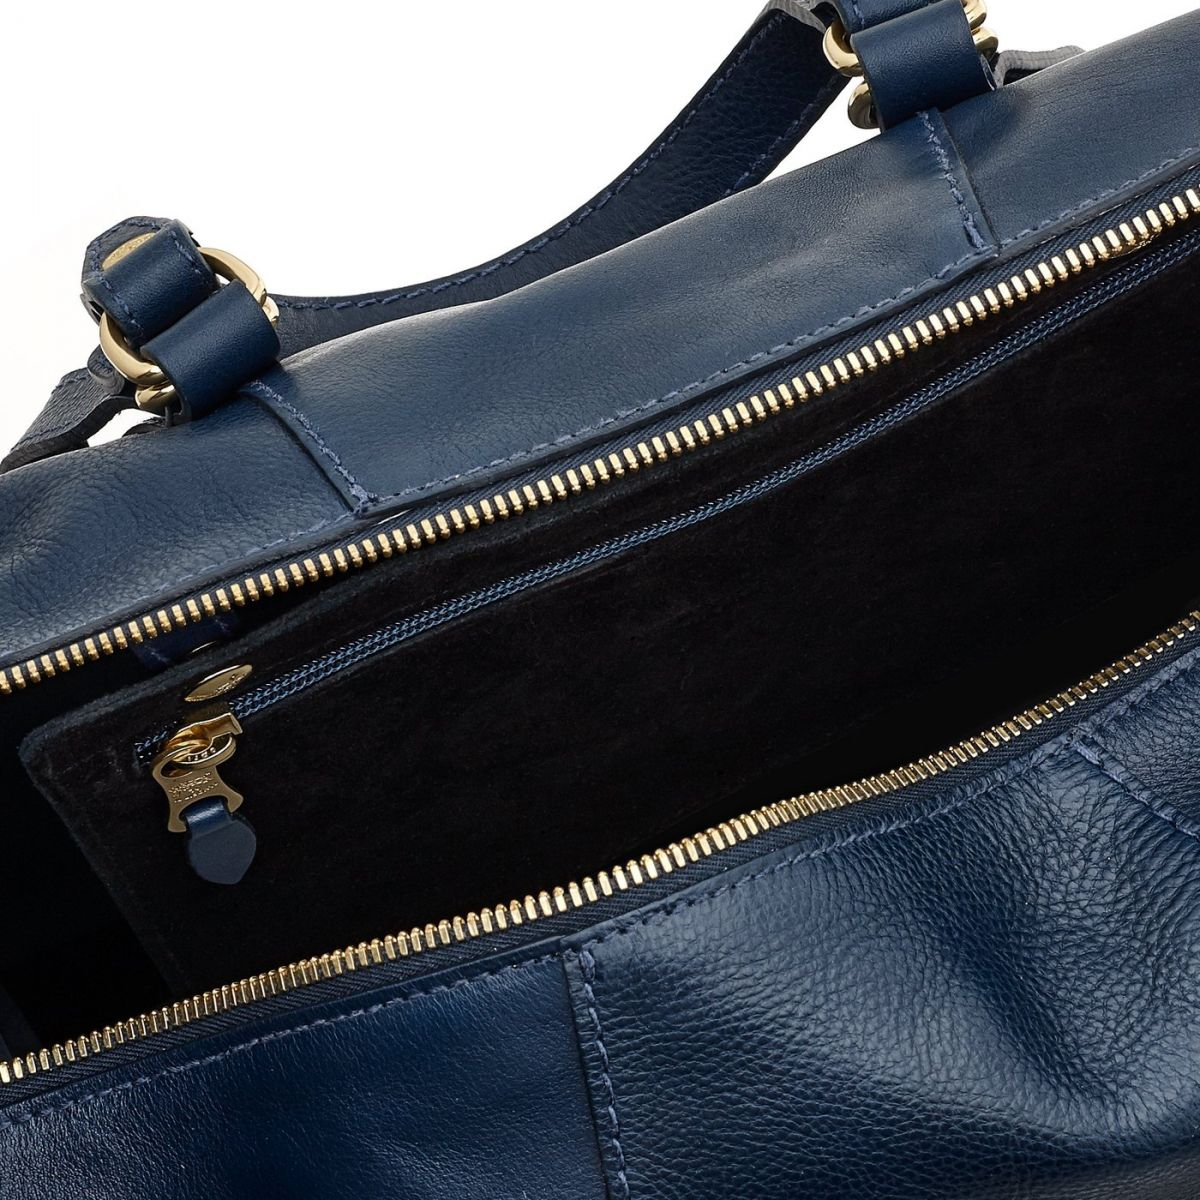 Women's Handbag Stromboli in Cowhide Leather BTH105 color Blue | Details